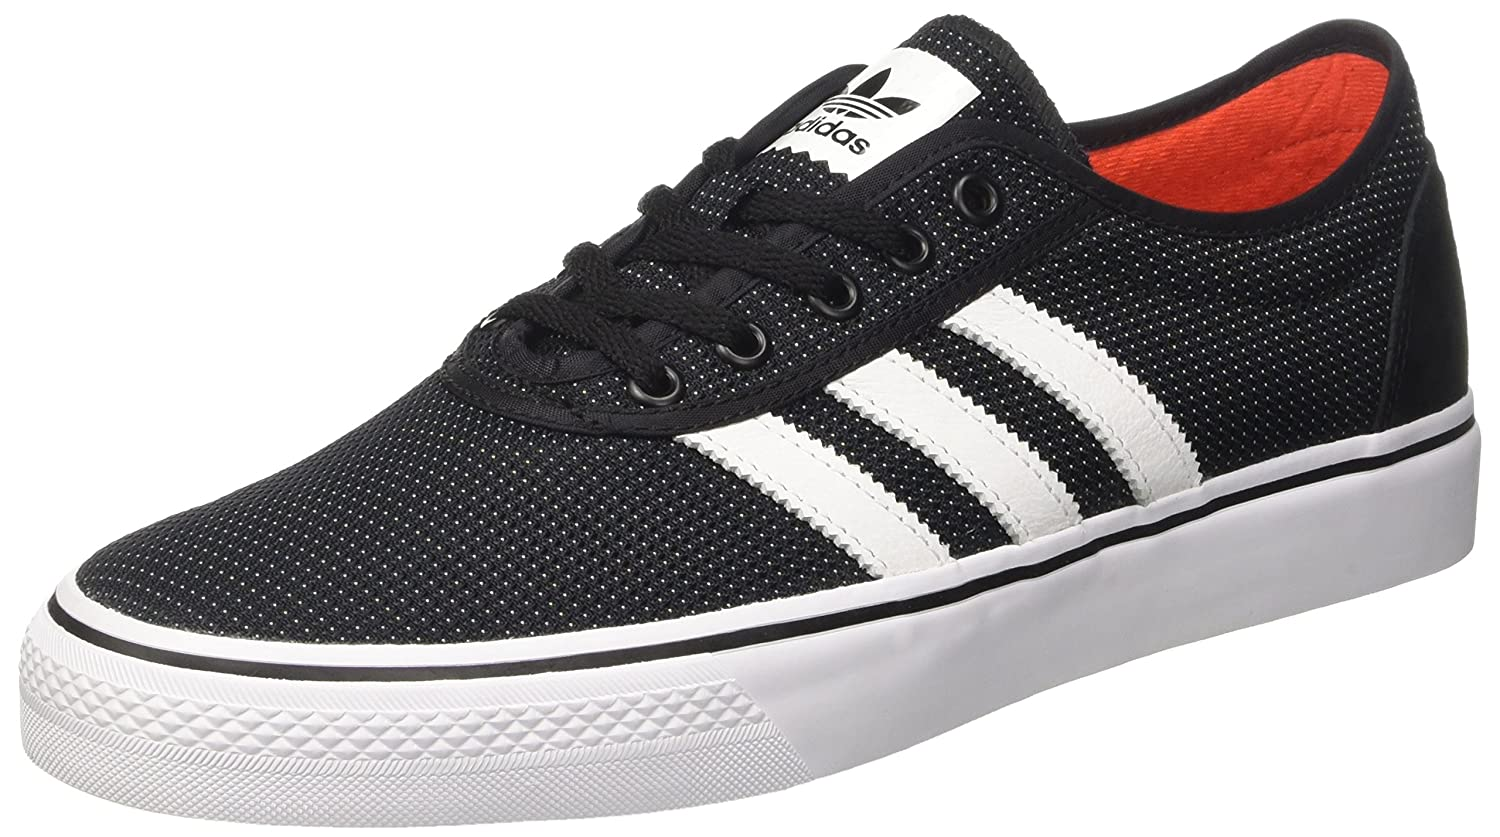 Adidas Adi-Ease, Chaussures de Skateboard Mixte Adulte